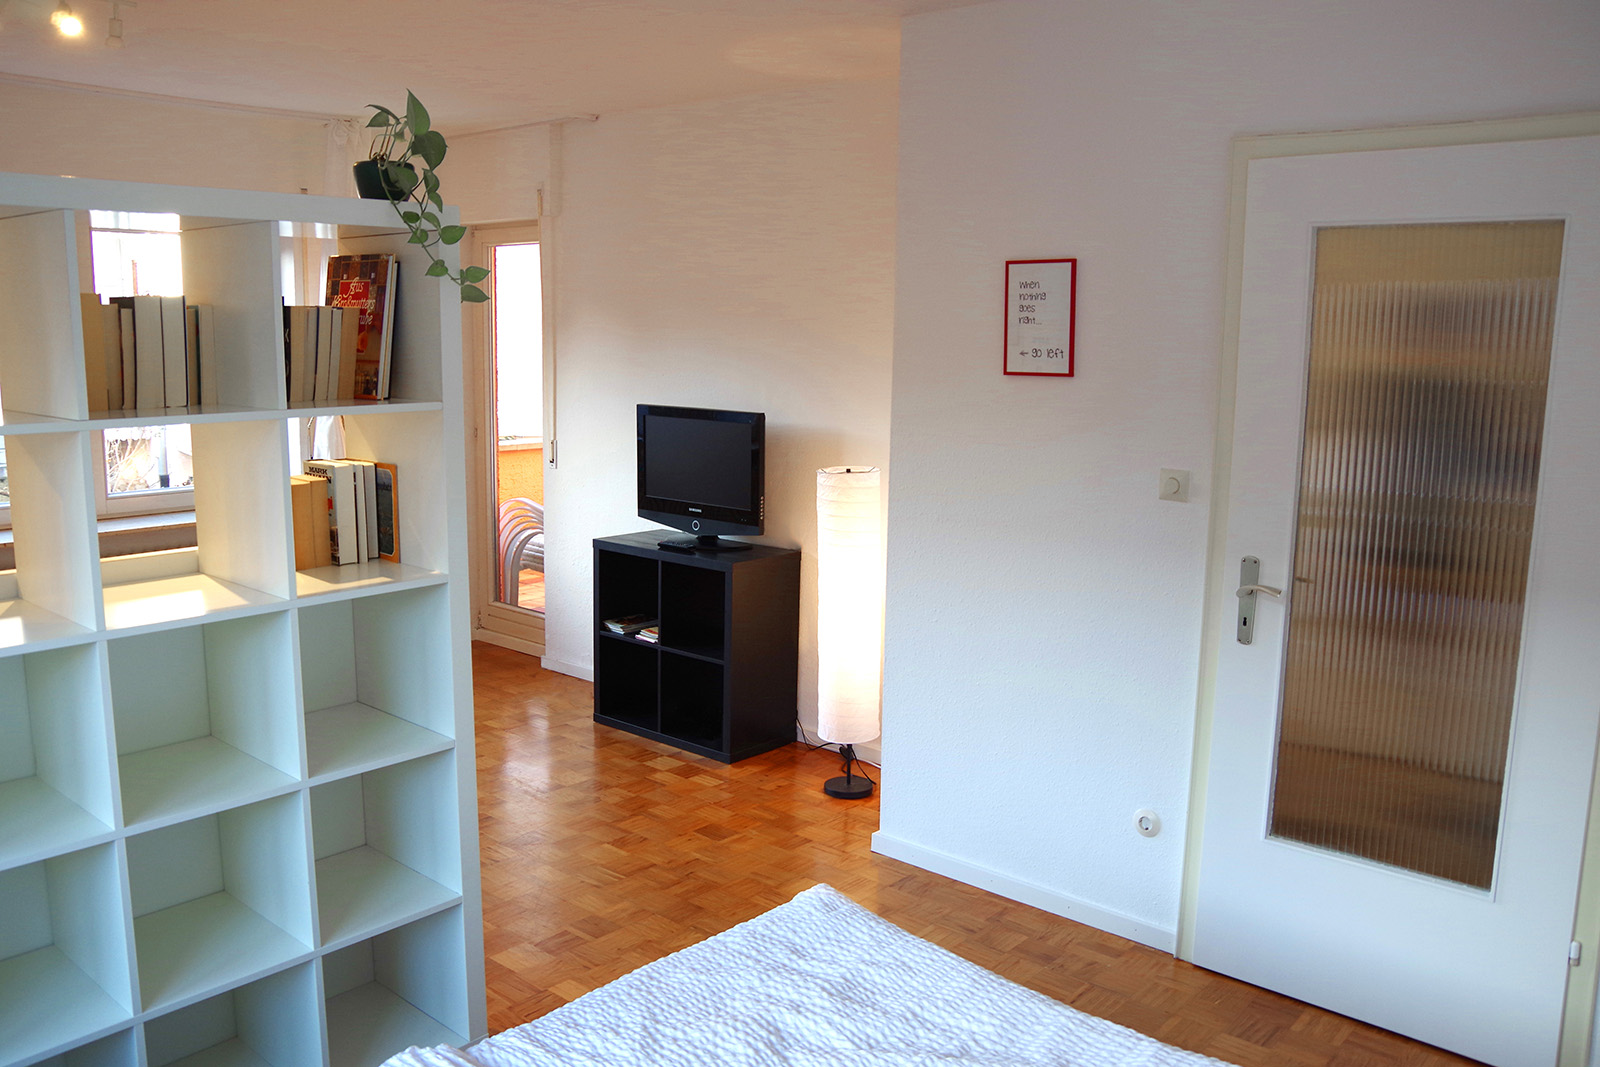 Holiday apartments on Lake Constance: Familienhafen - Living